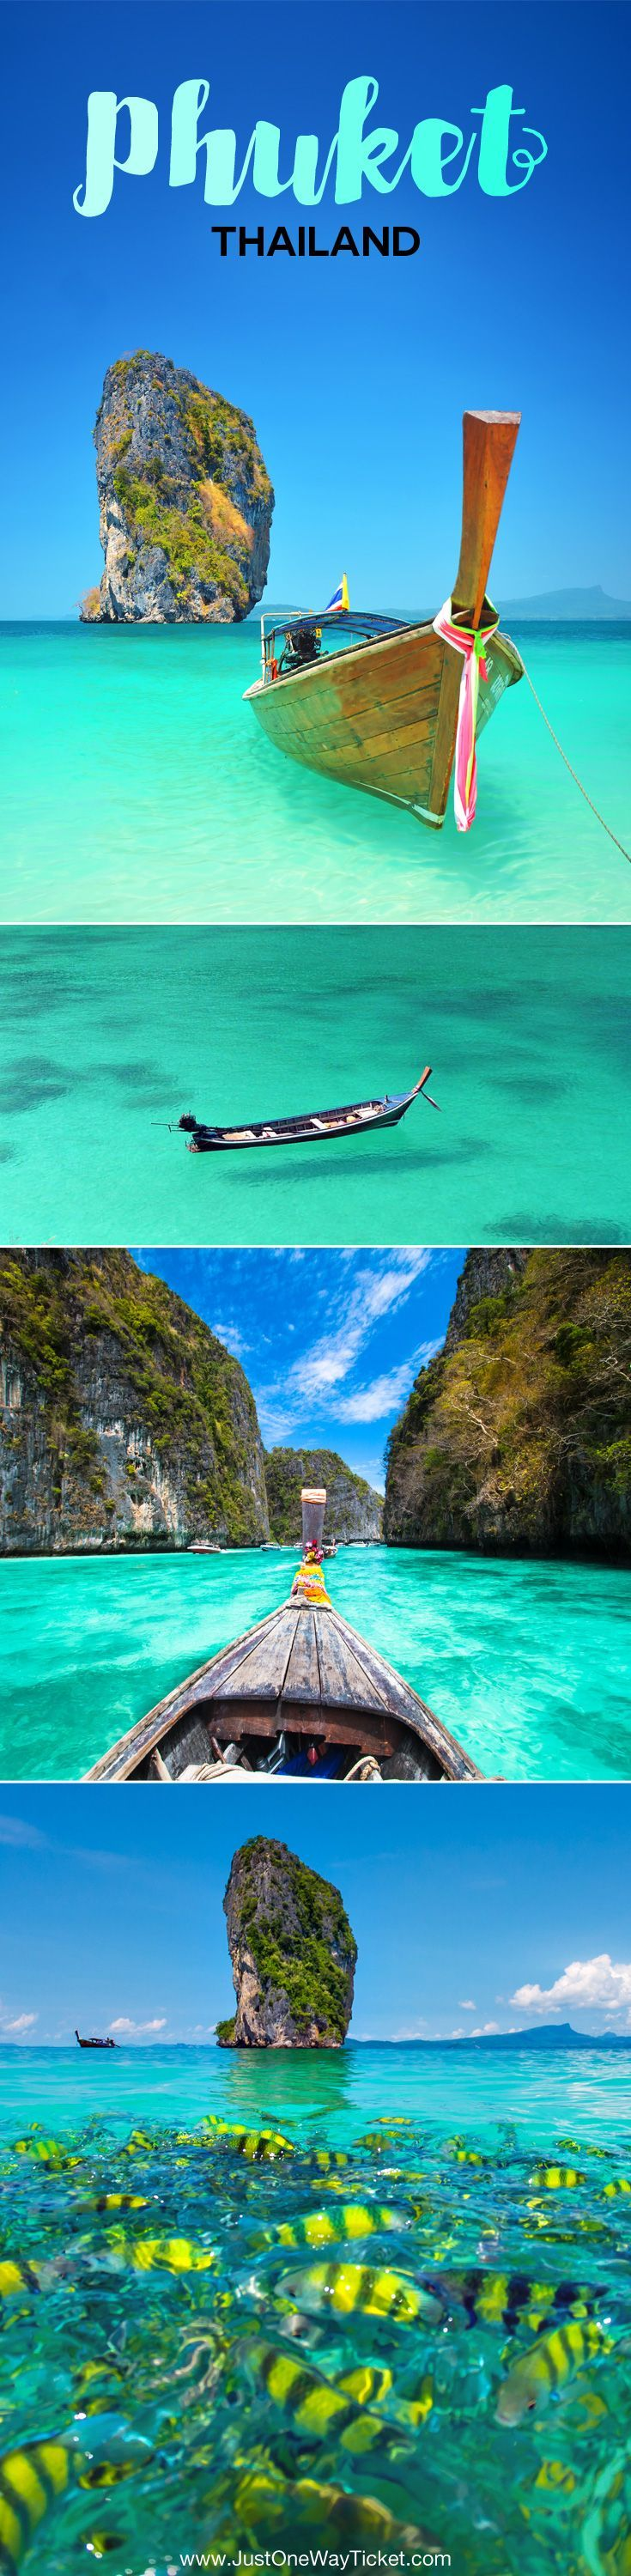 Travel Guide To Phuket: Things To Do in Phuket And Places To Stay | Phuket offers natural beauty, rich culture, white beaches, tropical islands and plenty of adventure activities | via /Just1WayTicket/ | Photo ©️️ Depositphotos